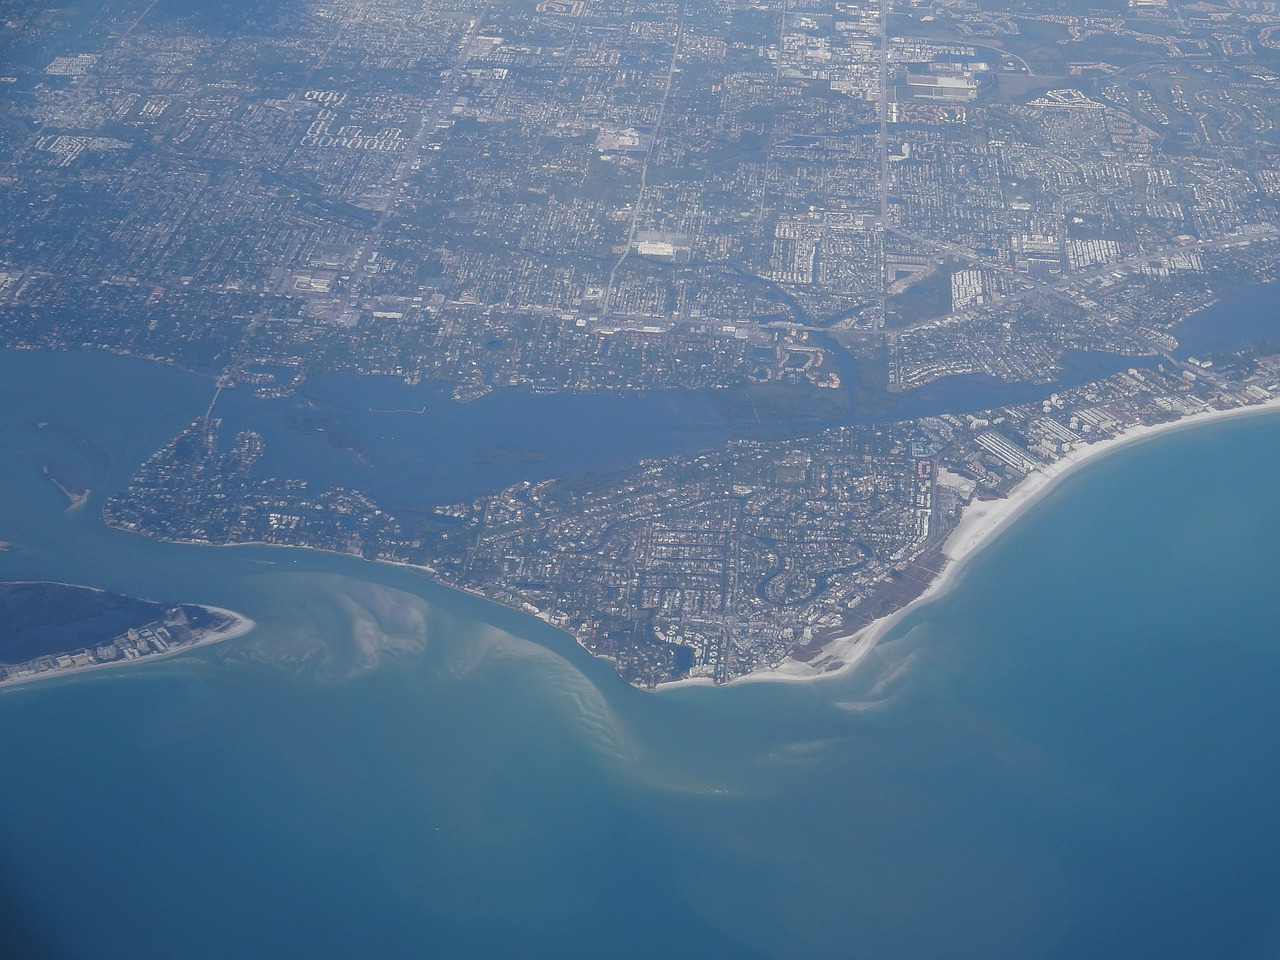 florida,gulf coast,aerial view,travel,coast,america,usa,free pictures, free photos, free images, royalty free, free illustrations, public domain